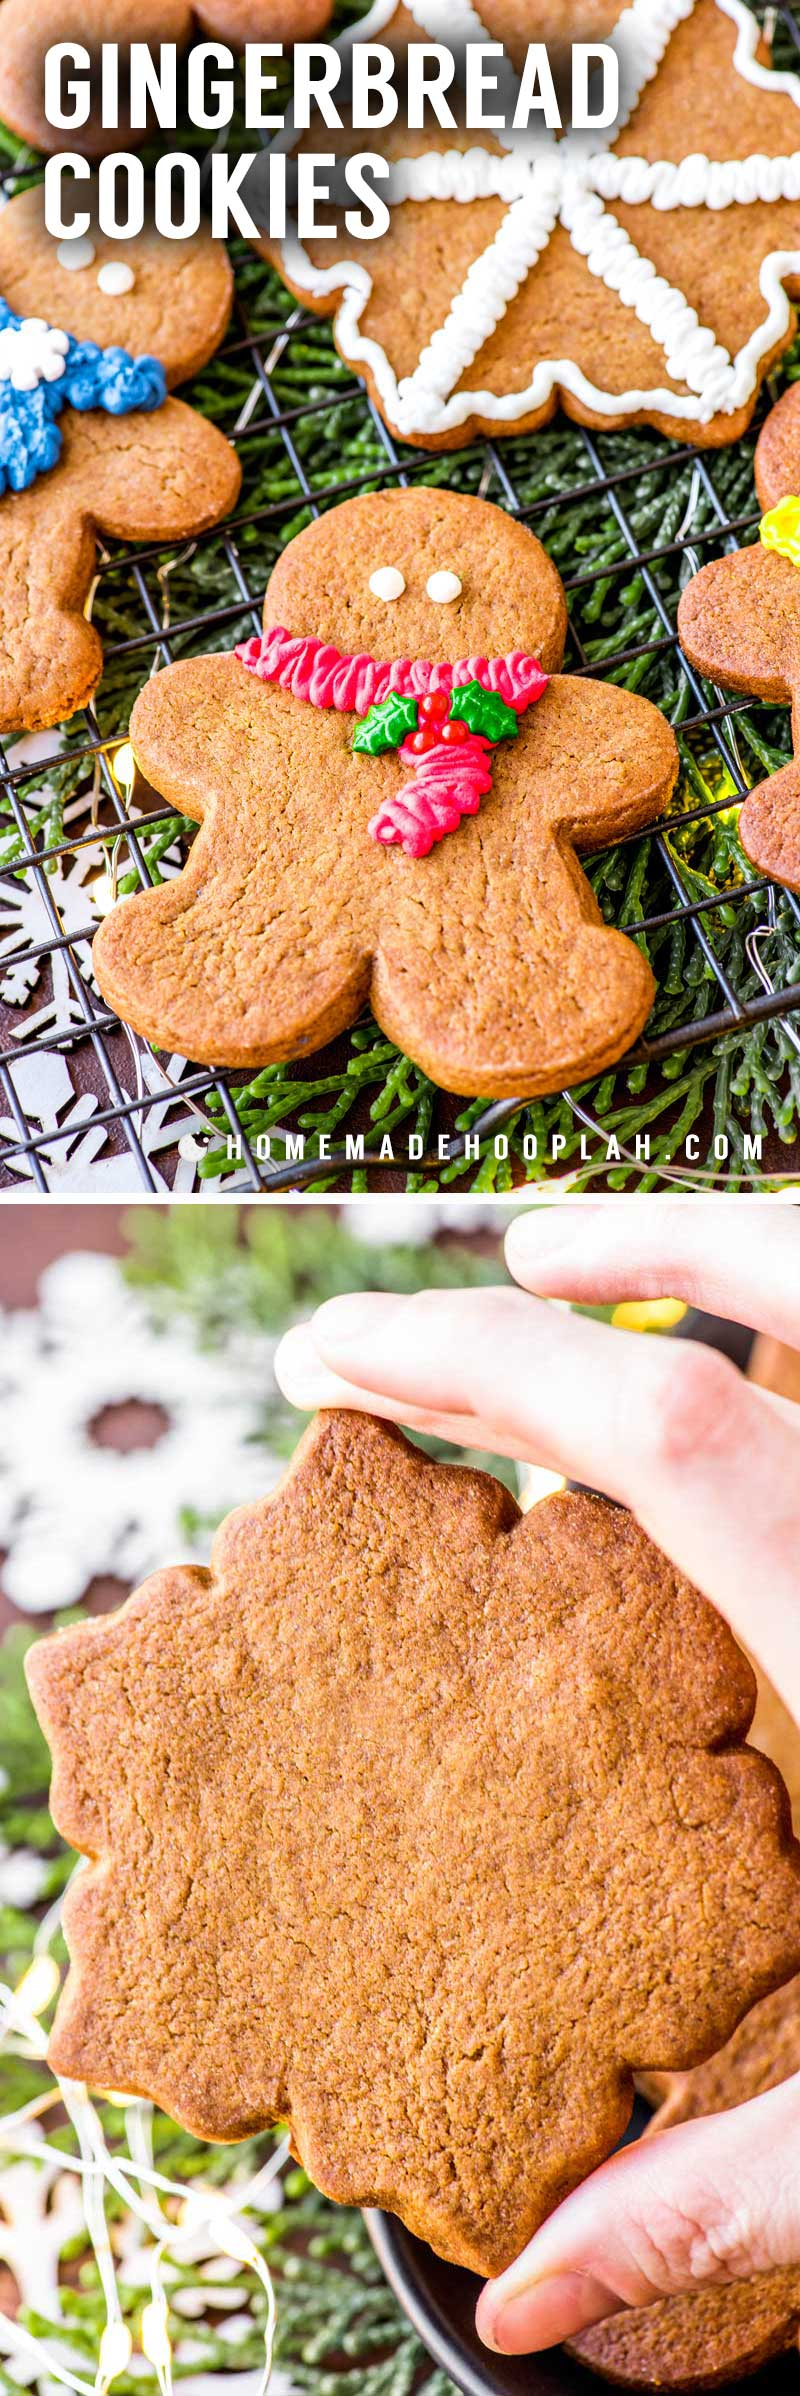 Gingerbread Cookies! Nothing says the holidays like gingerbread! Easy to make and quick to bake, these classic gingerbread cookies are a cookie exchange staple. | HomemadeHooplah.com